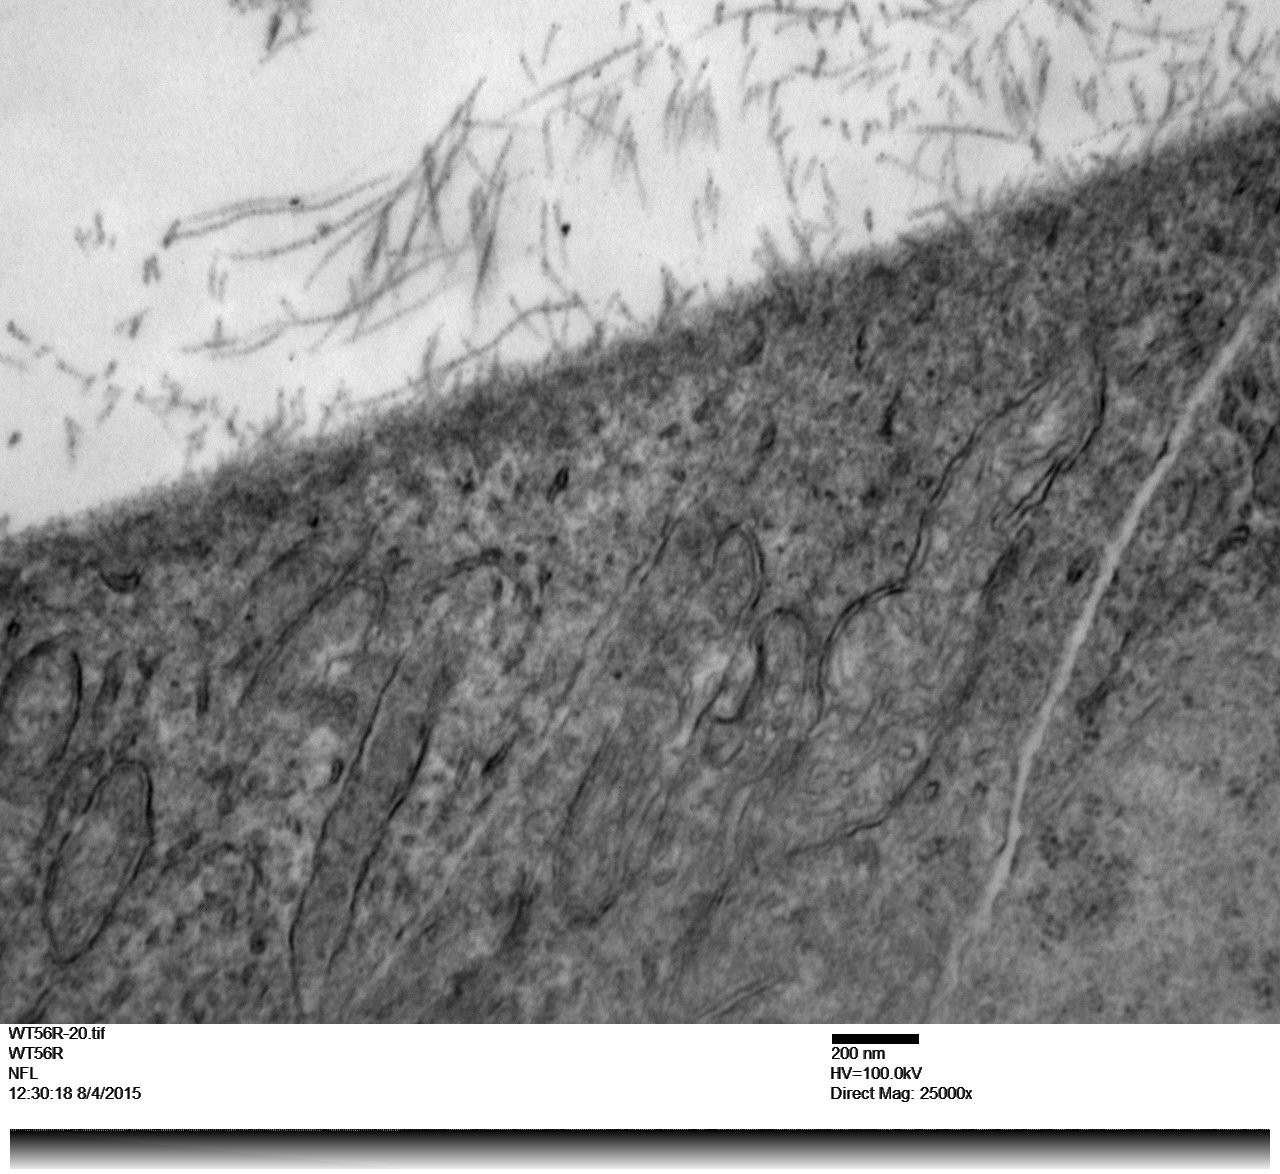 Mouse retina inner limiting membrane showing fibers from the vitrious humor